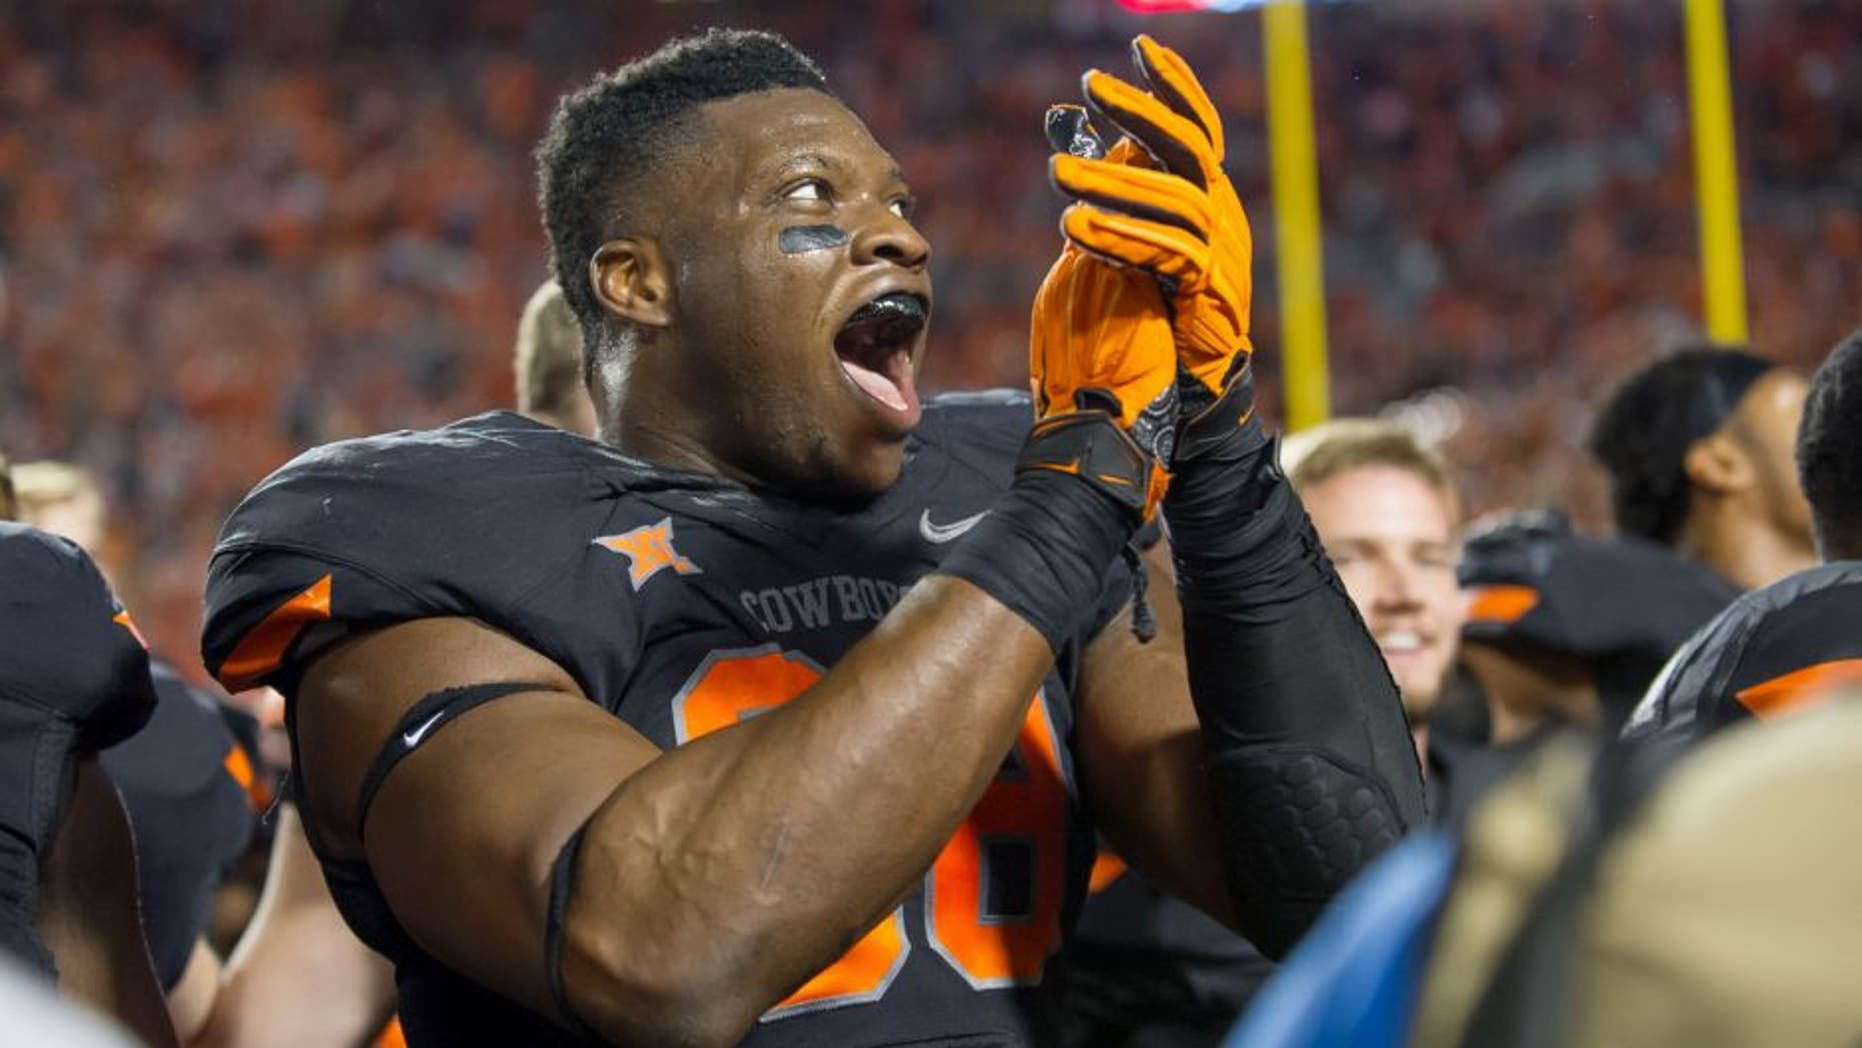 Nov 7, 2015; Stillwater, OK, USA; Oklahoma State Cowboys defensive end Emmanuel Ogbah (38) celebrates after the game against the TCU Horned Frogs at Boone Pickens Stadium. OSU won 49-29. Mandatory Credit: Rob Ferguson-USA TODAY Sports